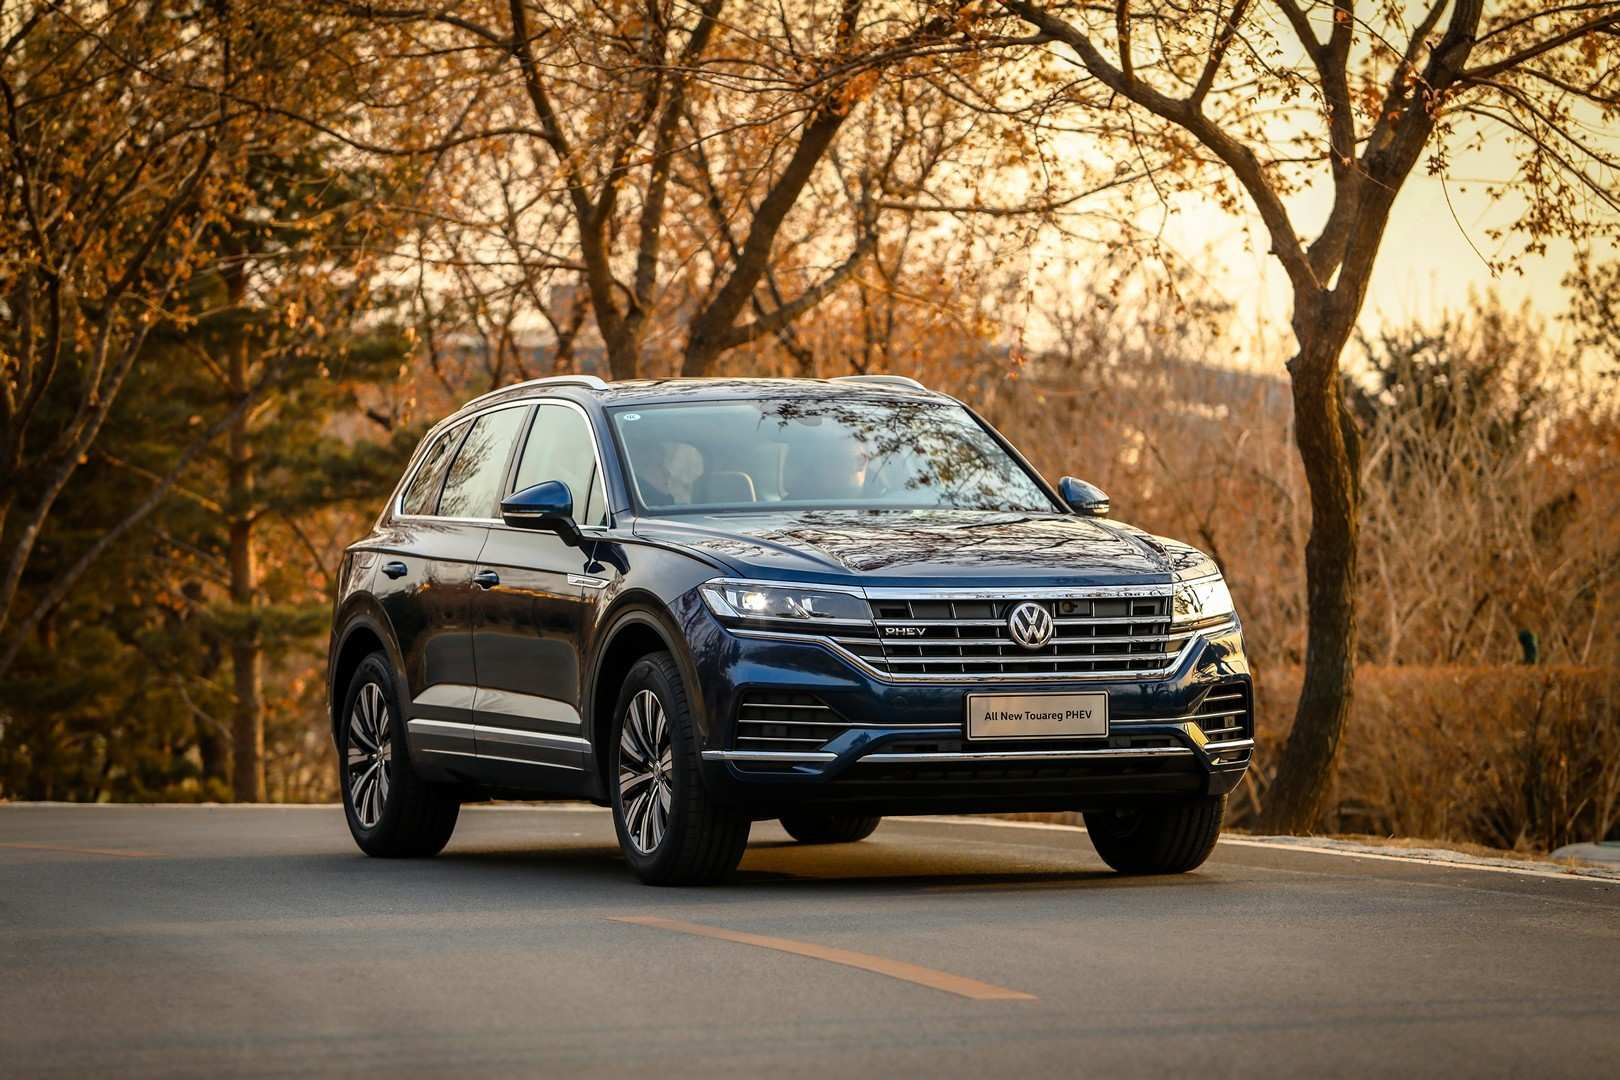 73 New Volkswagen Touareg Hybrid 2020 Research New